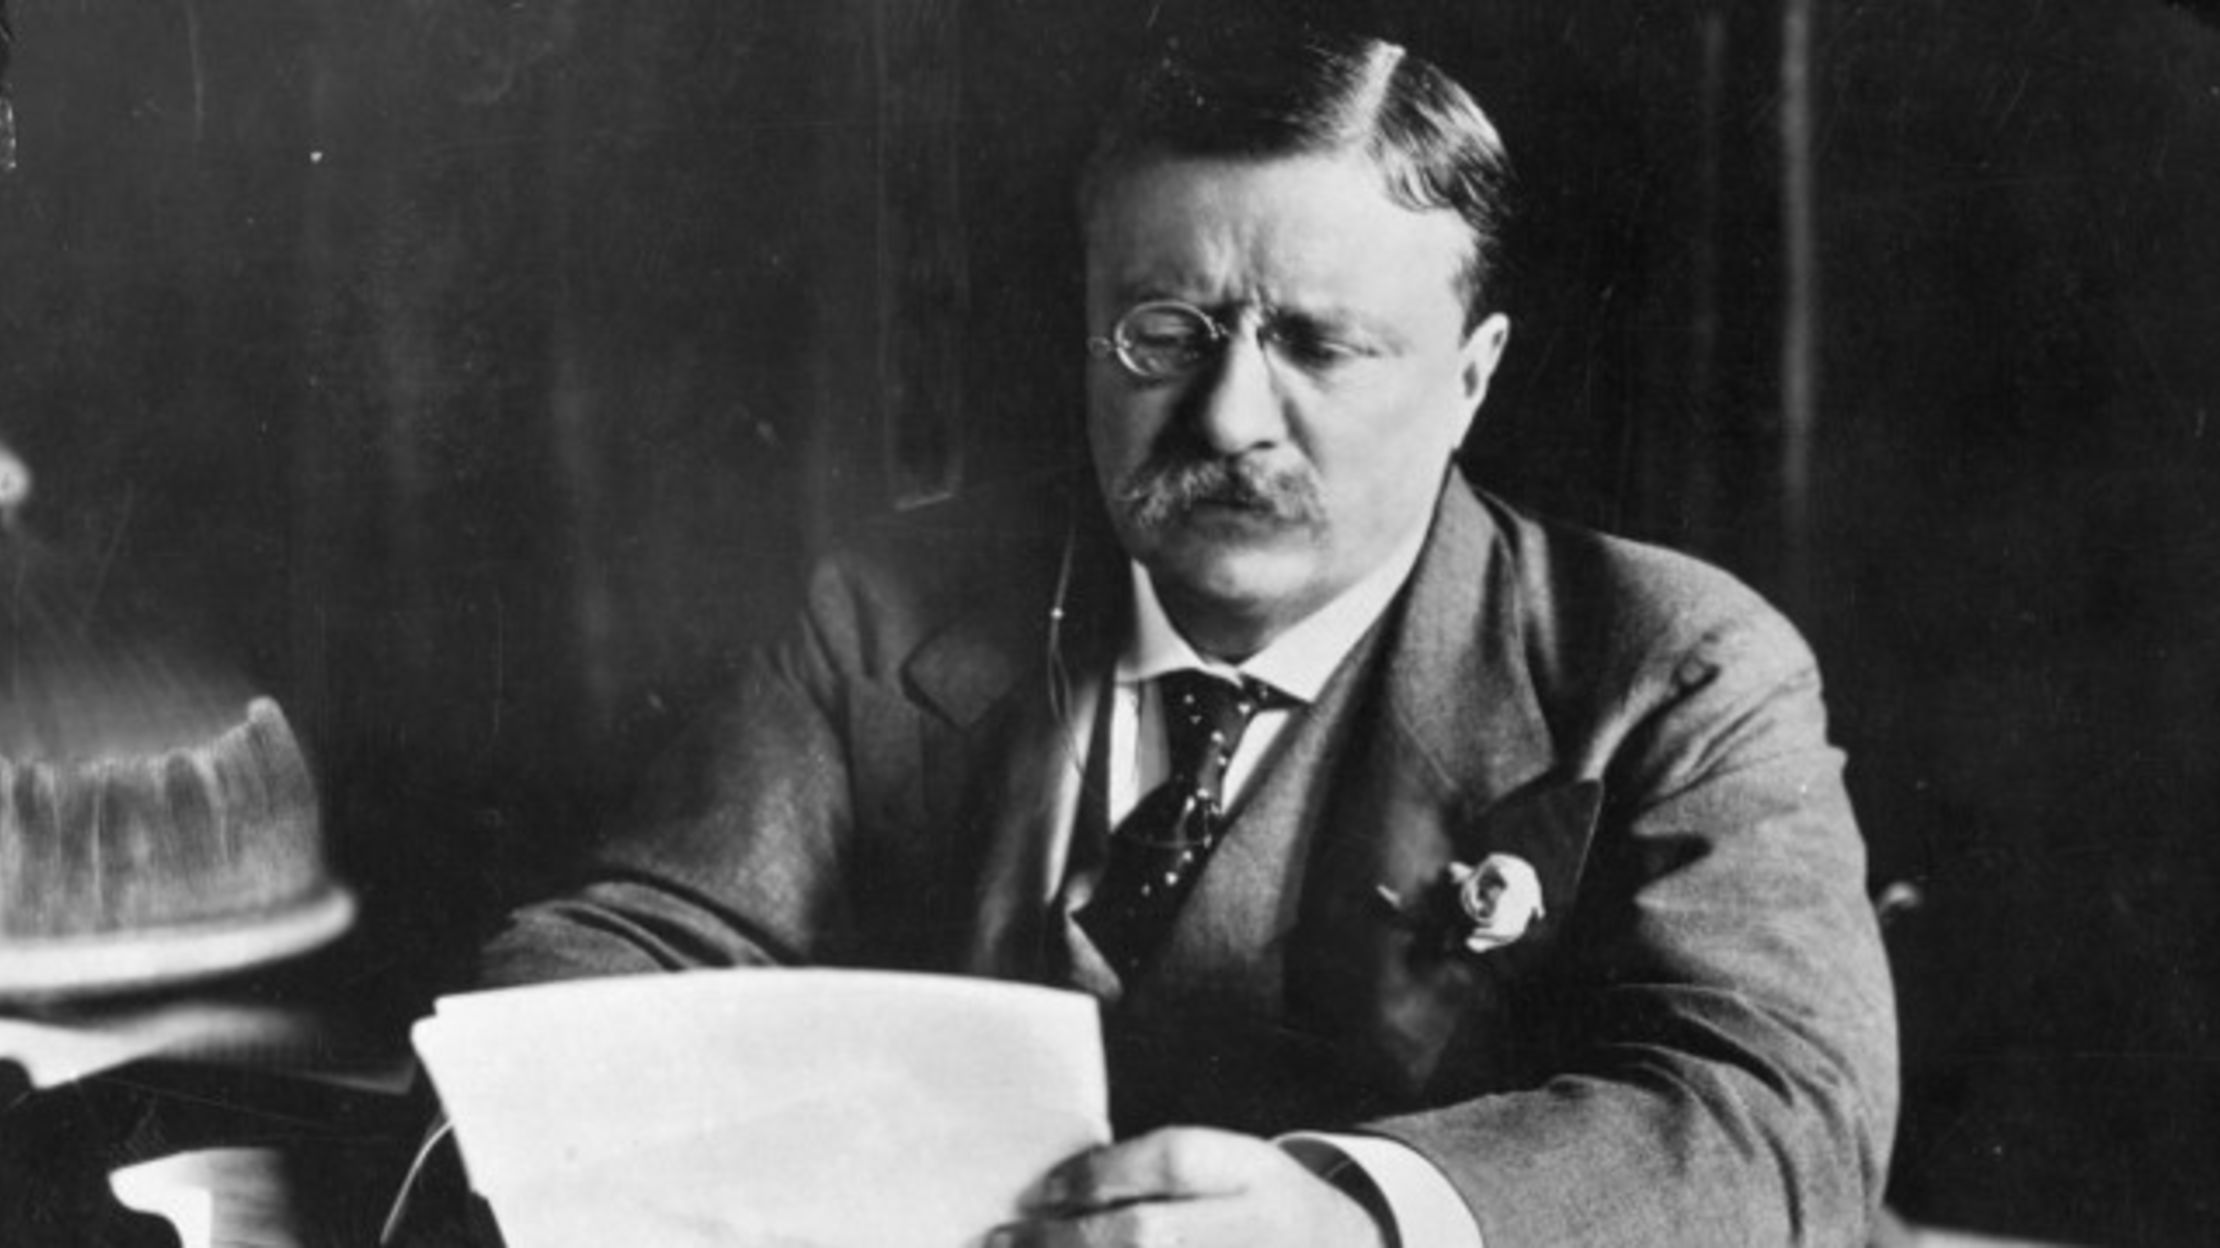 When Theodore Roosevelt Tried to Reform the English Language